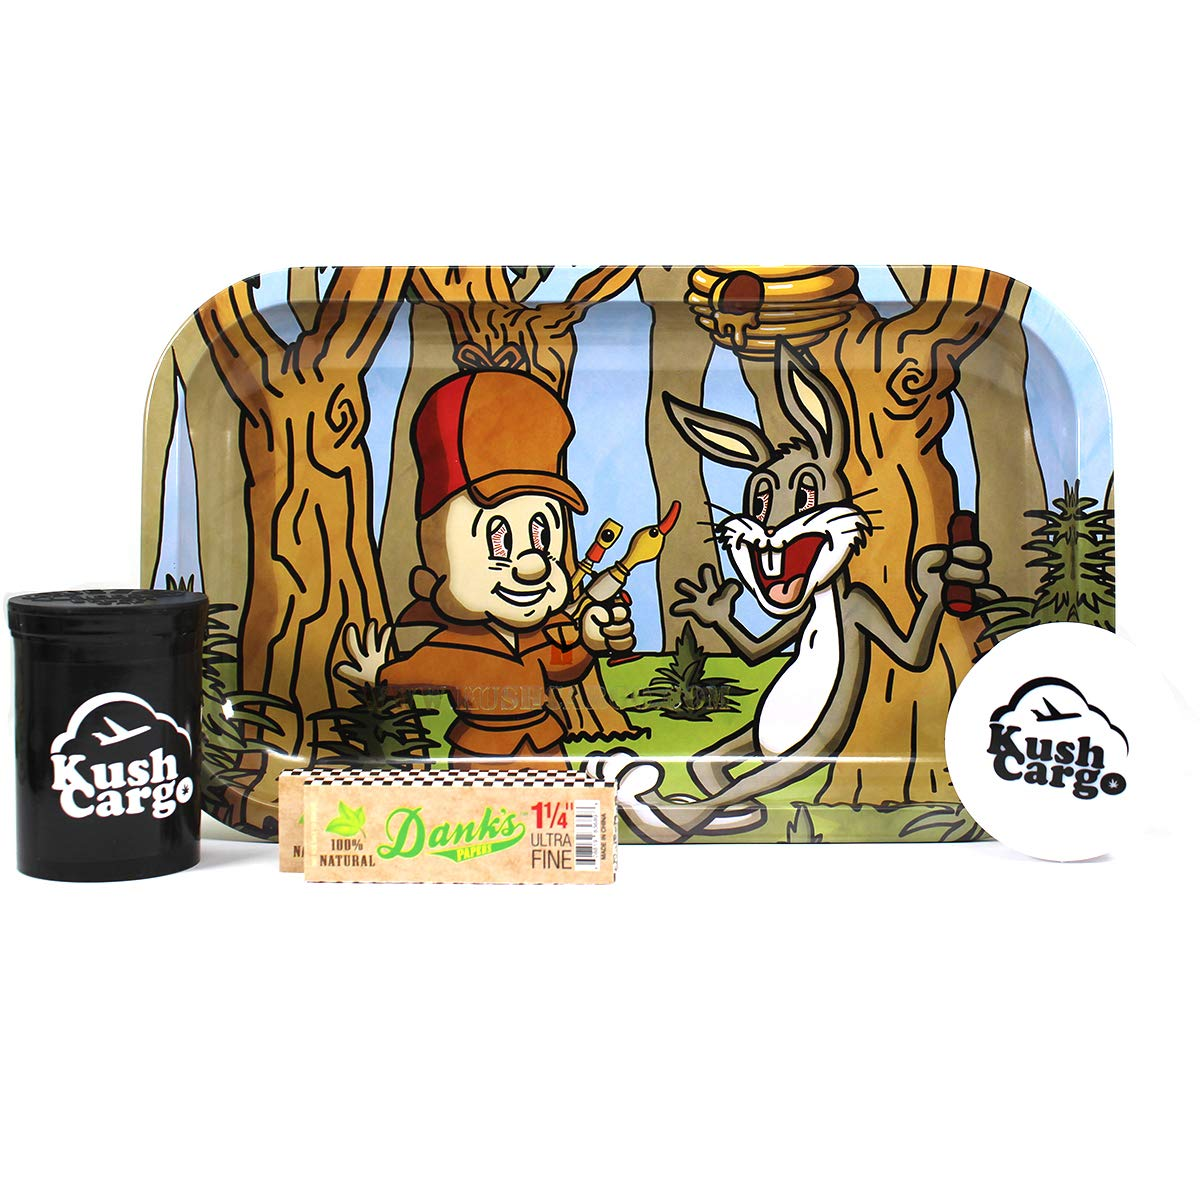 Errlmer and Nugz Bunny Rolling Tray with KC Grinder and Rolling Papers by Unknown